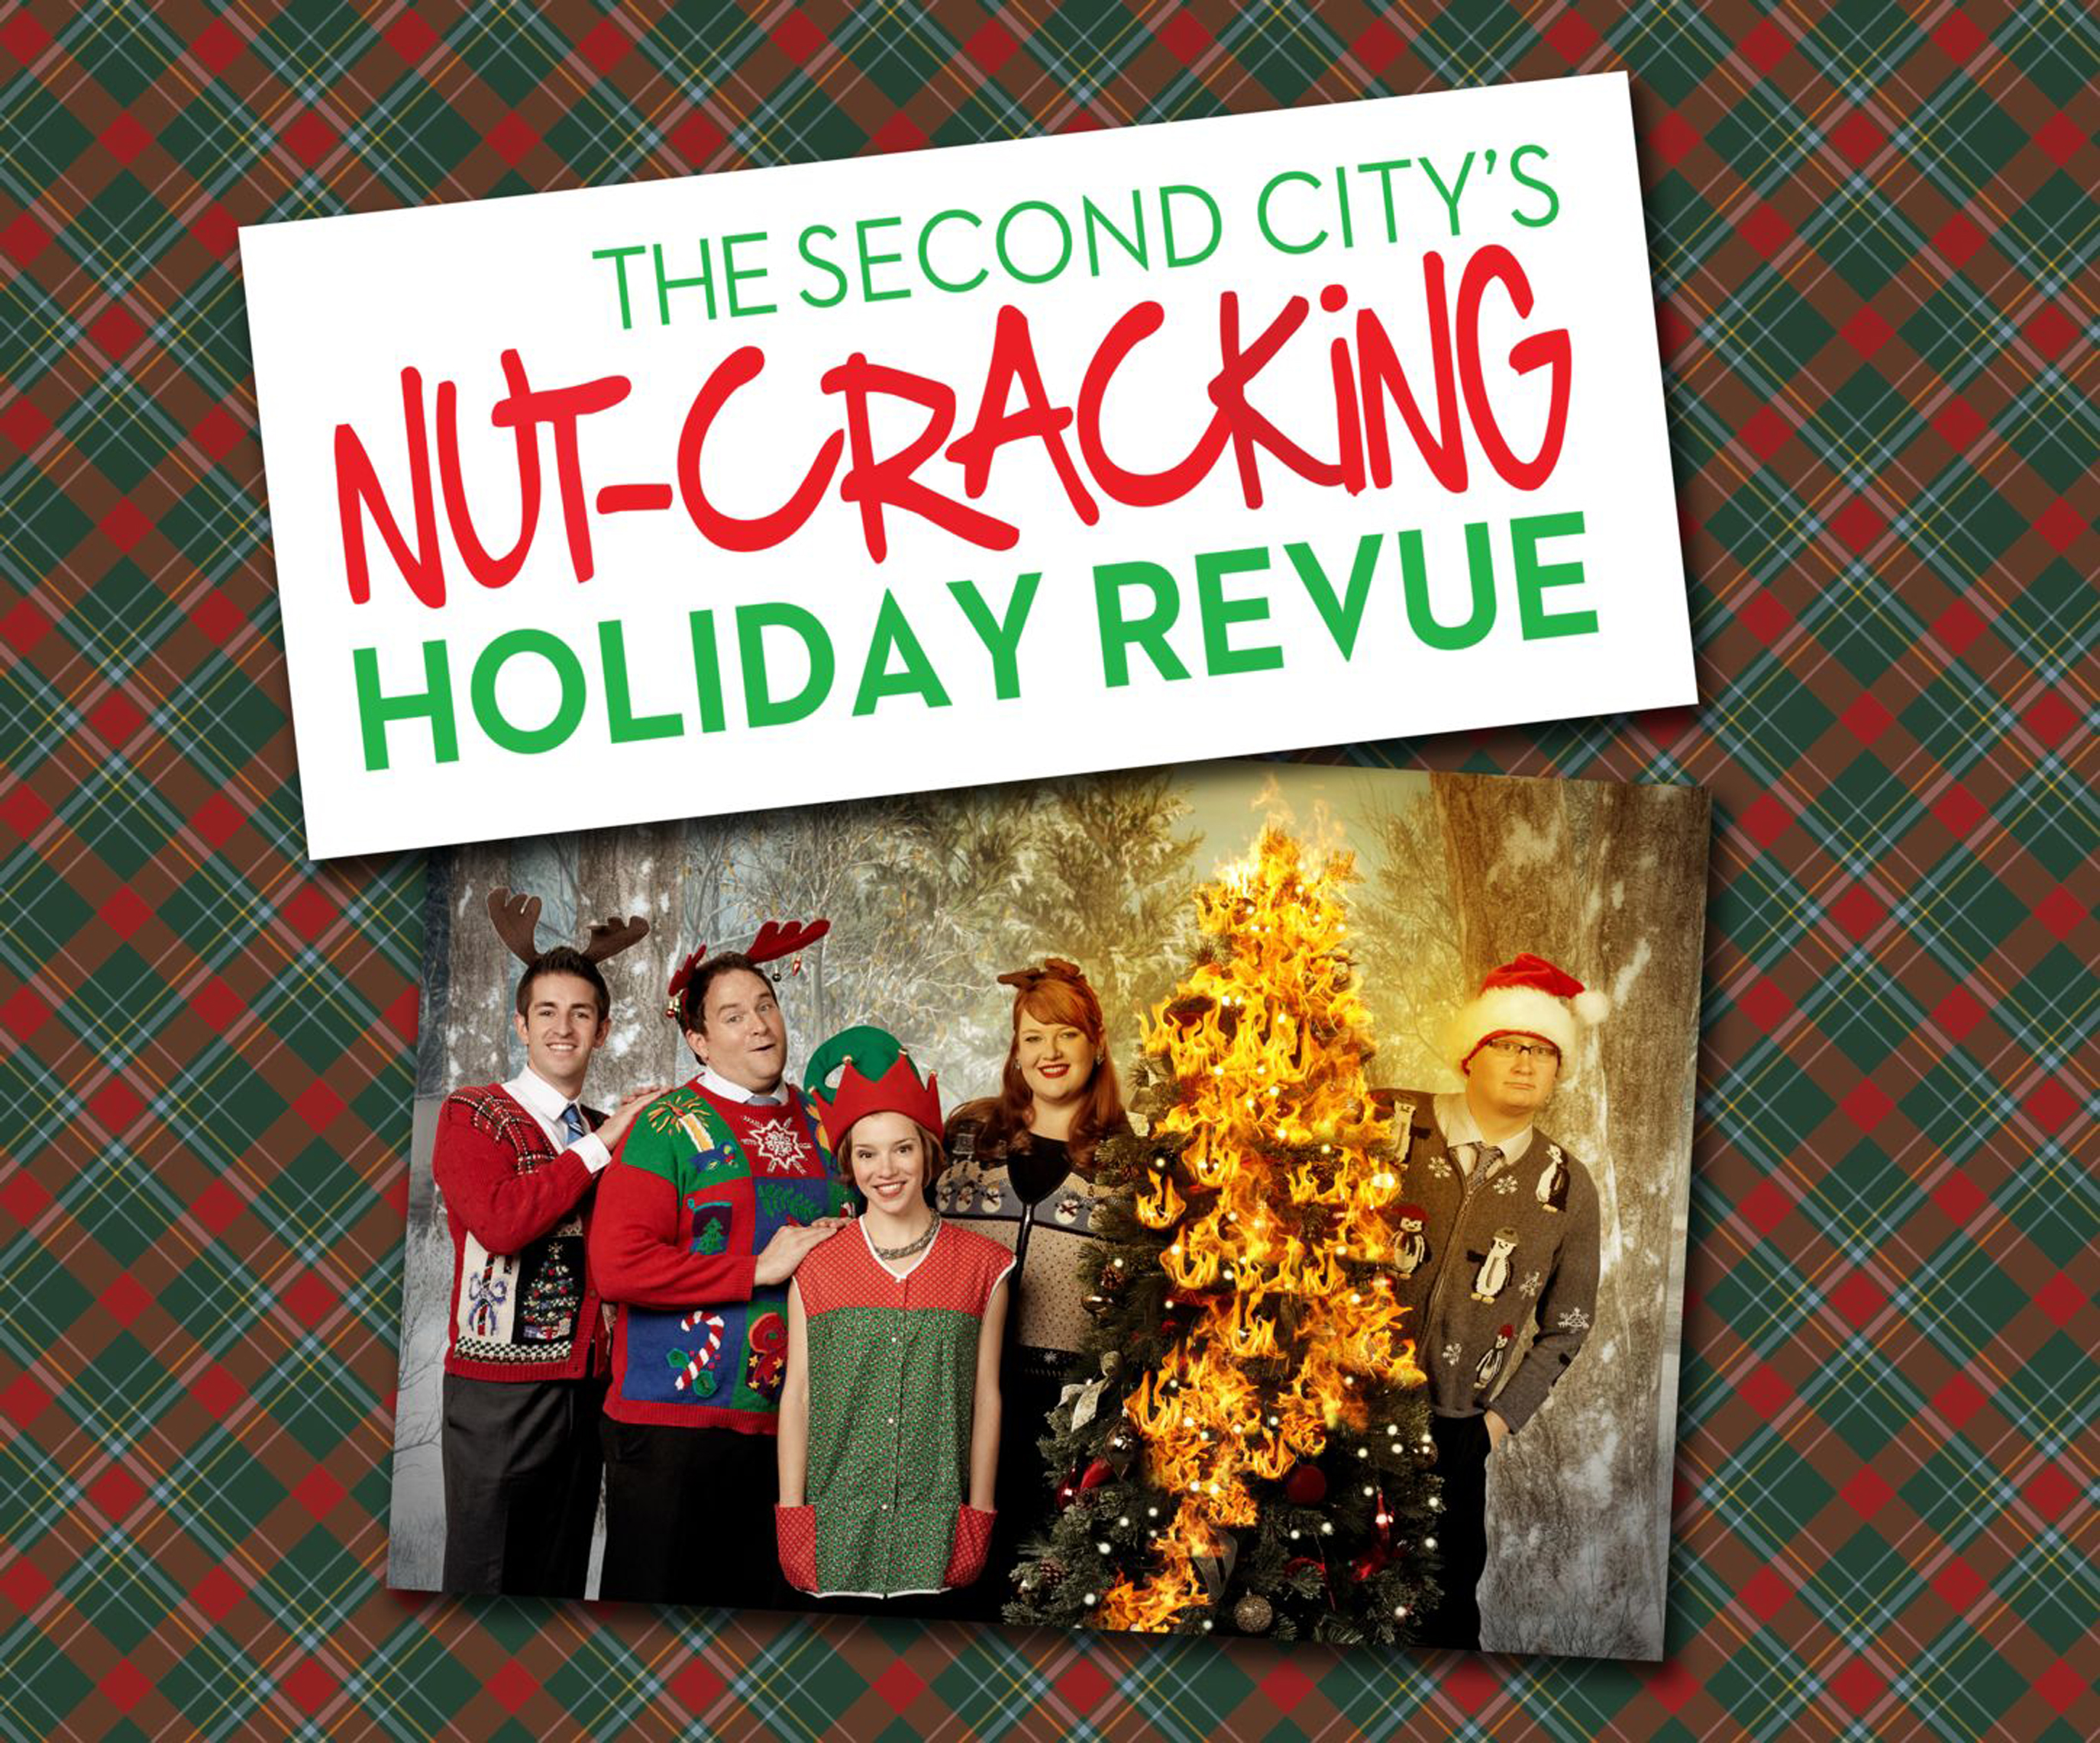 Second 20city 20nutcracking 20holiday 20revue..